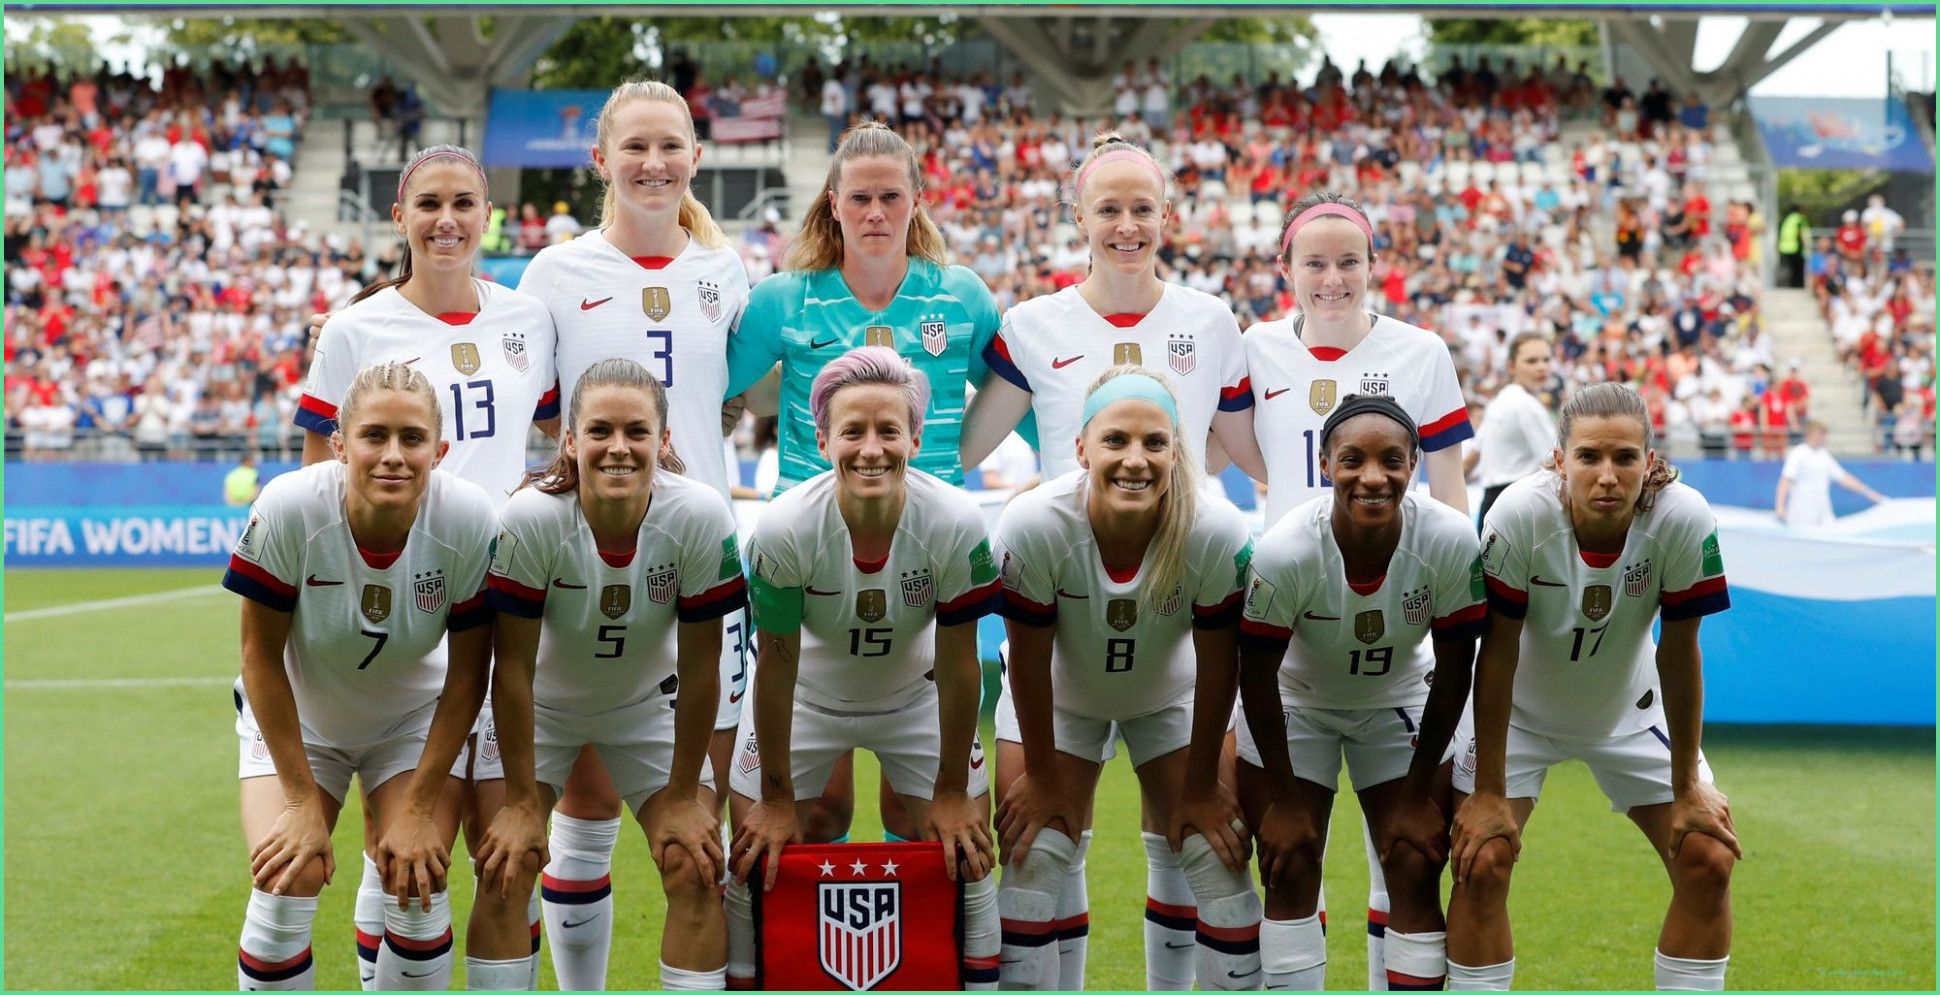 9 Things You Wont Miss Out If You Attend Us Womens Soccer Team Players Us Womens Soccer Team Players Https Soccer In 2020 Soccer Women S Soccer Women S Soccer Team